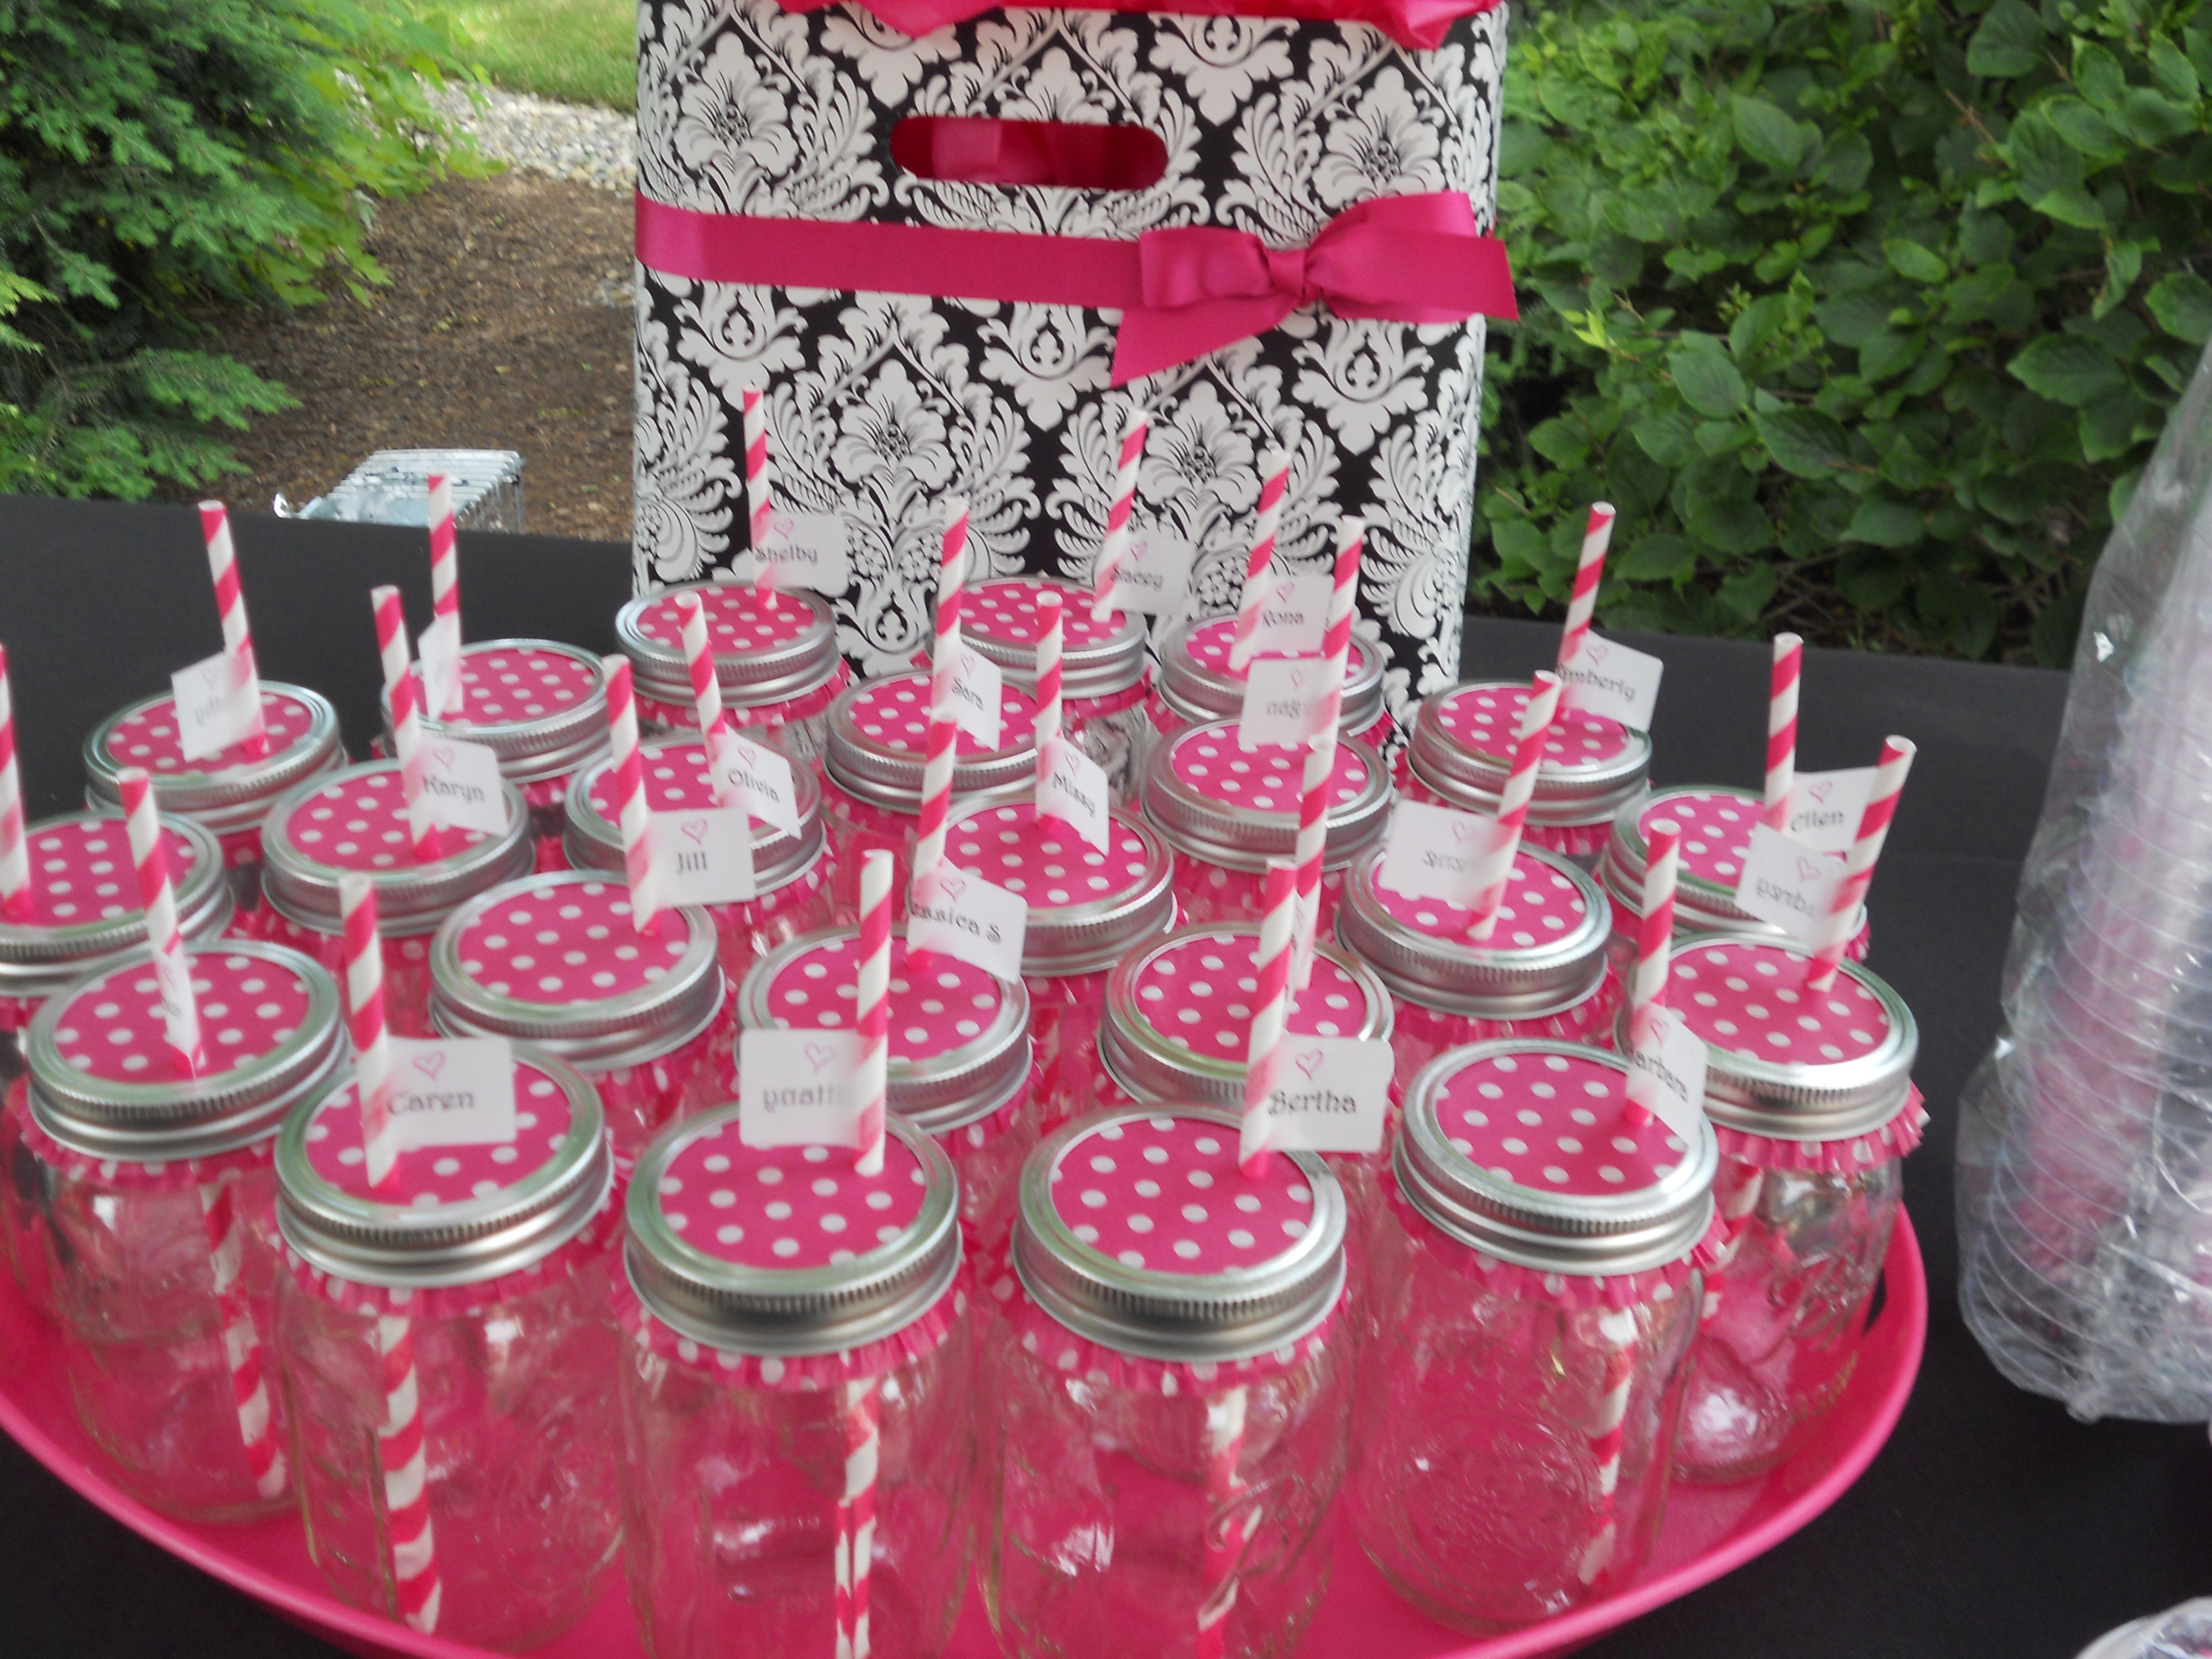 Mason jars covered with cupcake liners and straws with name labels ...